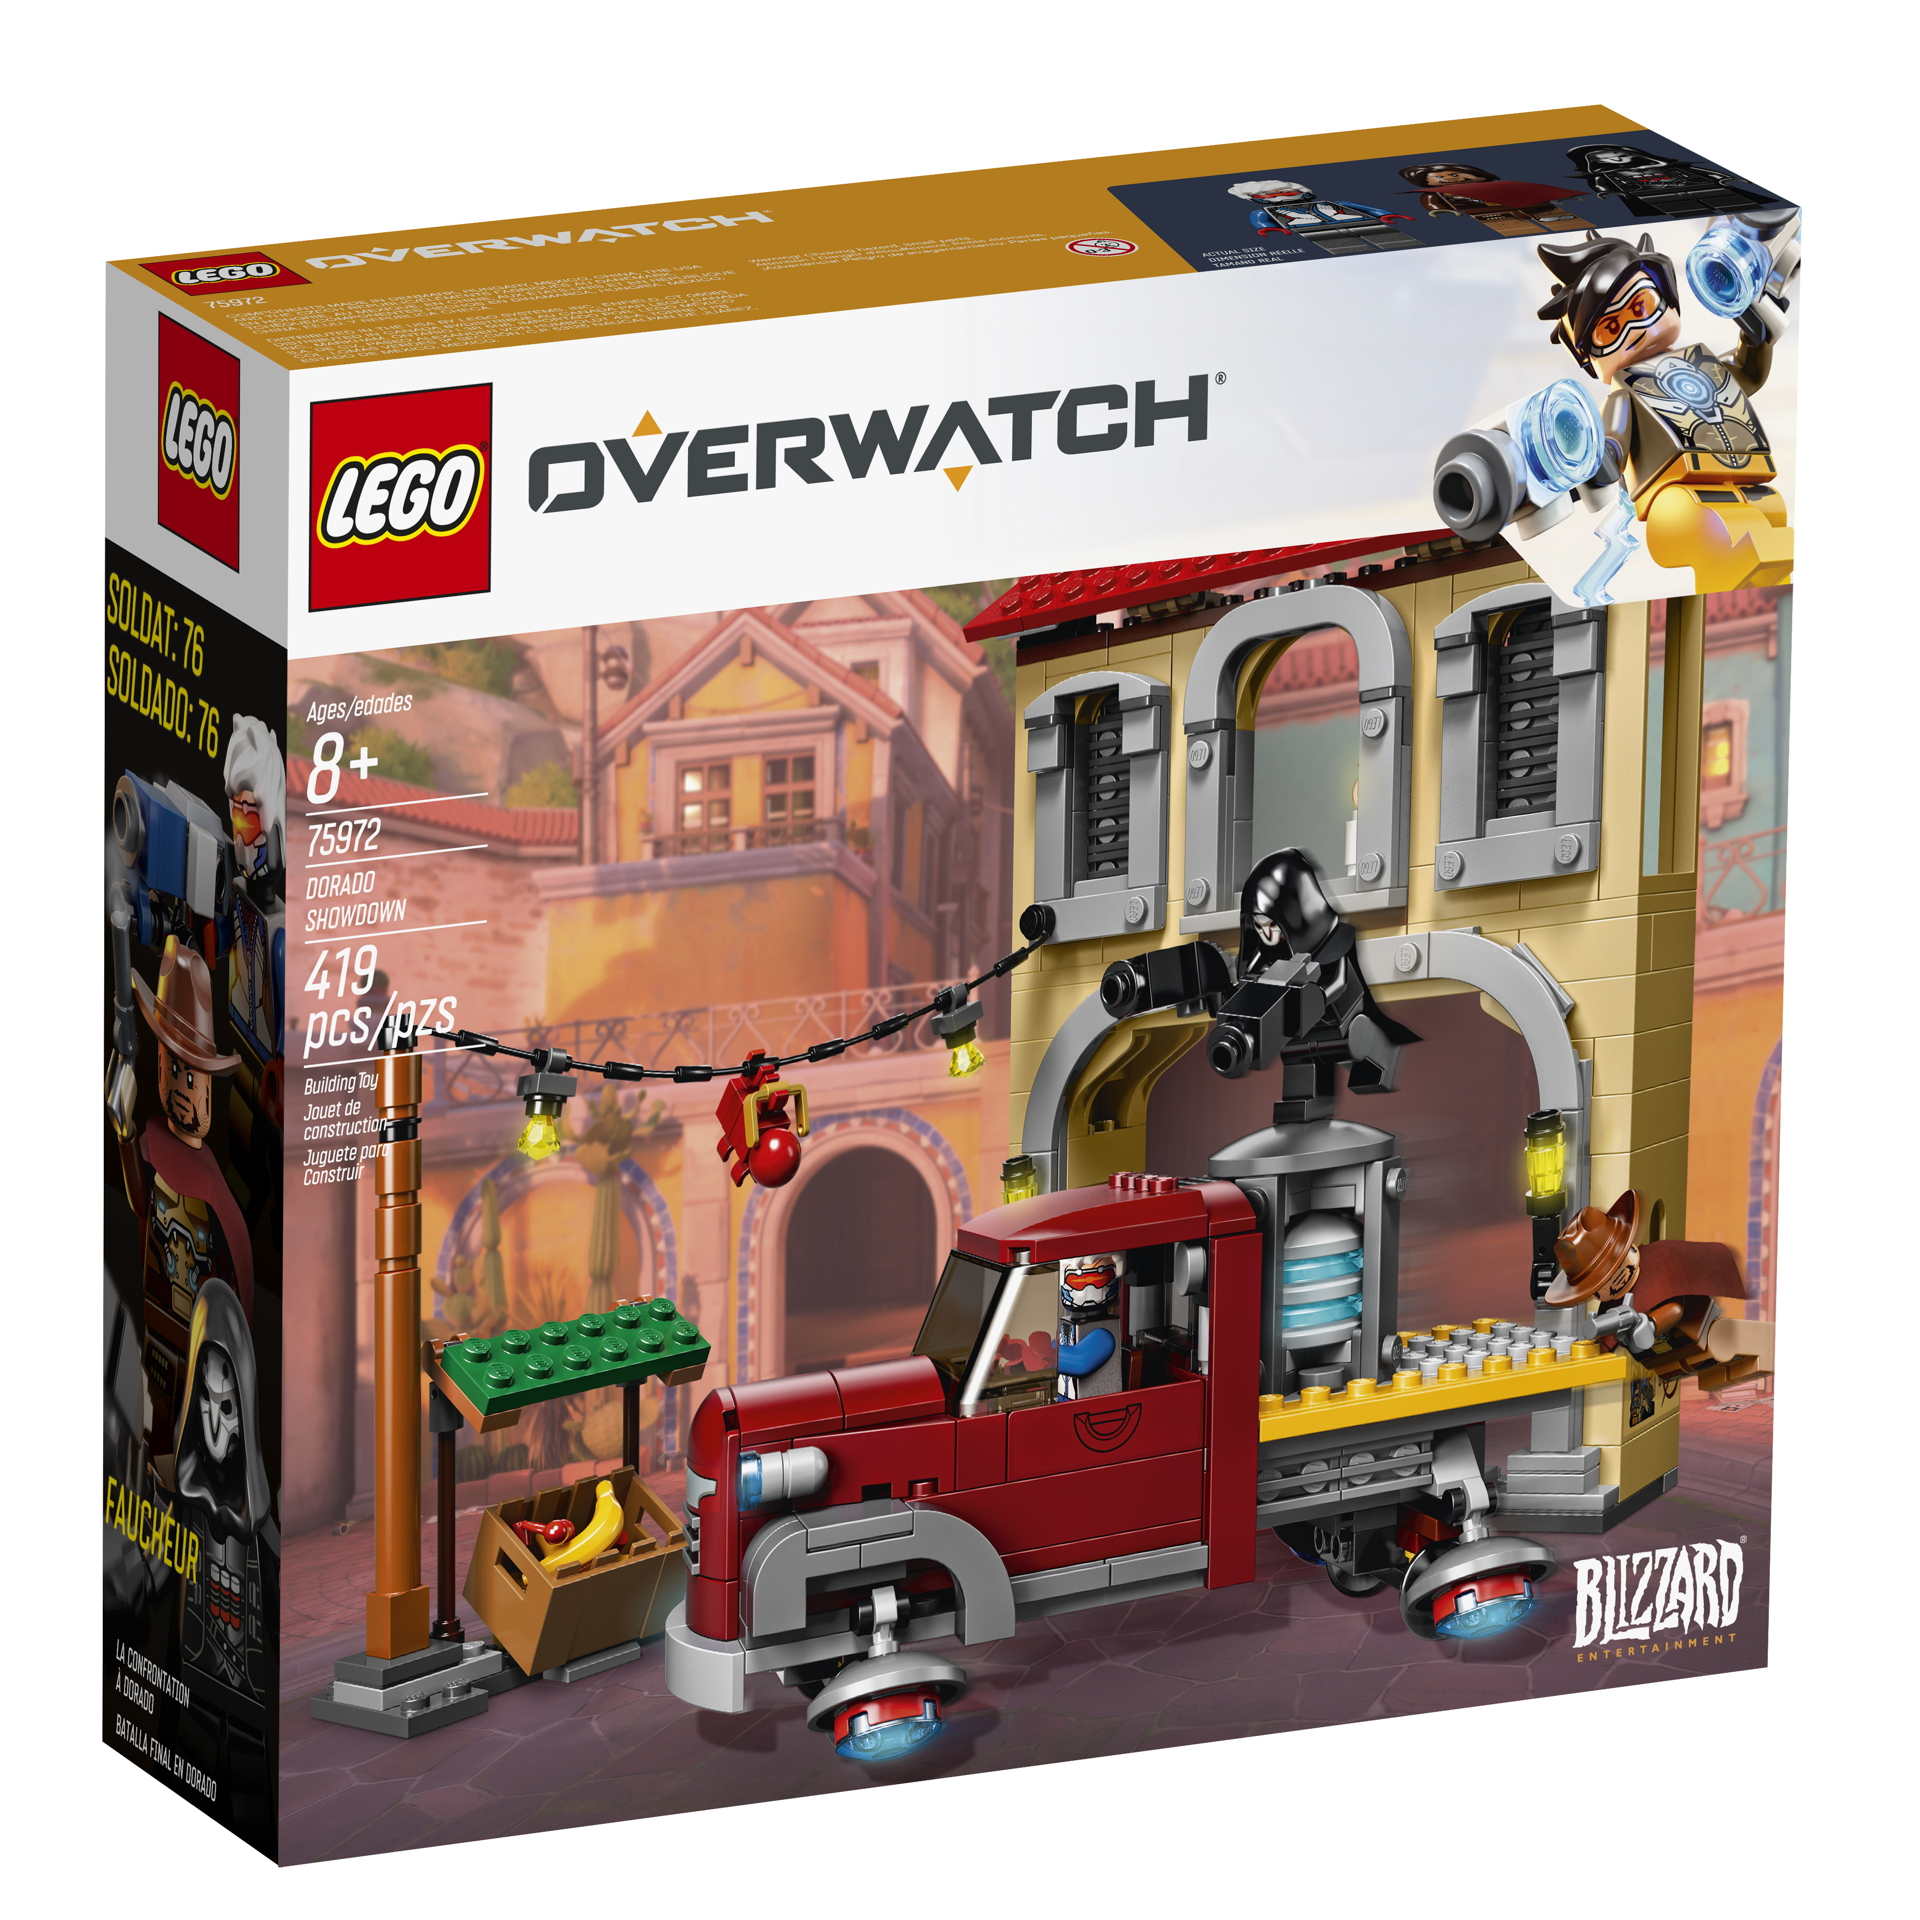 Overwatch Lego sets announced, available Jan  1 - Polygon